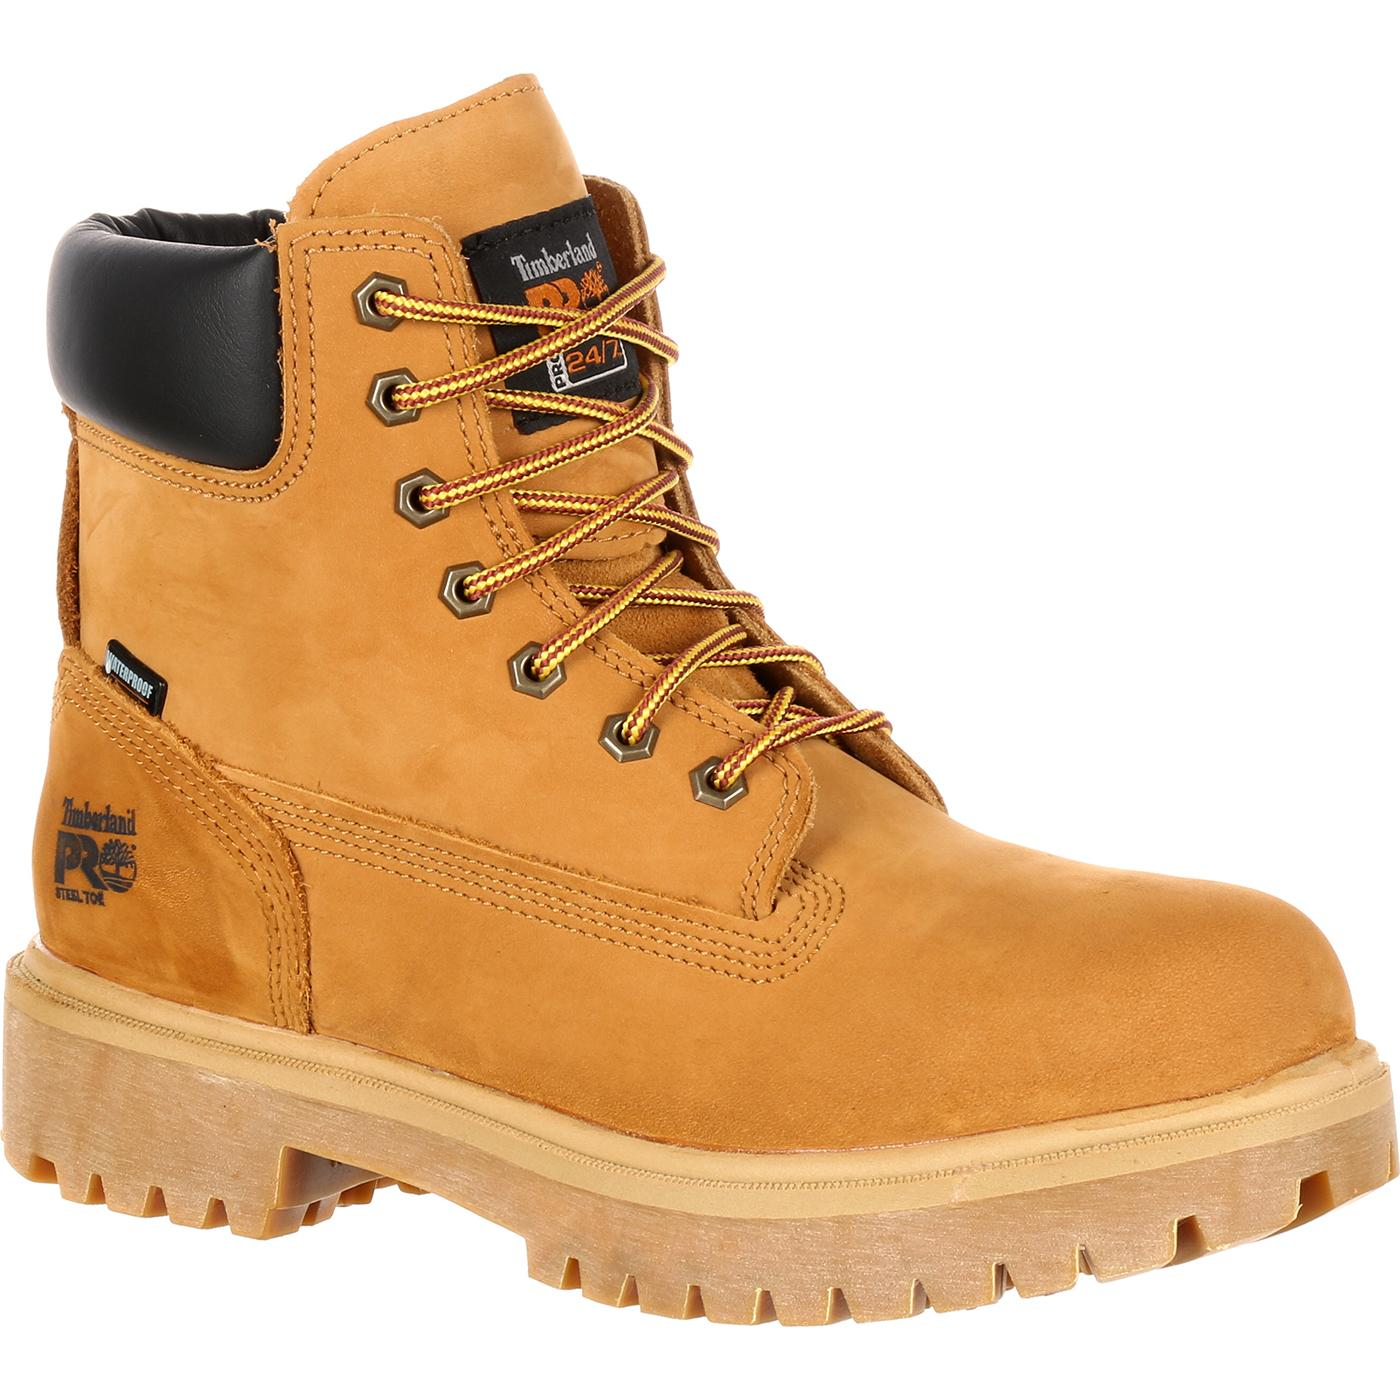 Timberland PRO Direct Attach Steel Toe Waterproof 200g Insulated ...